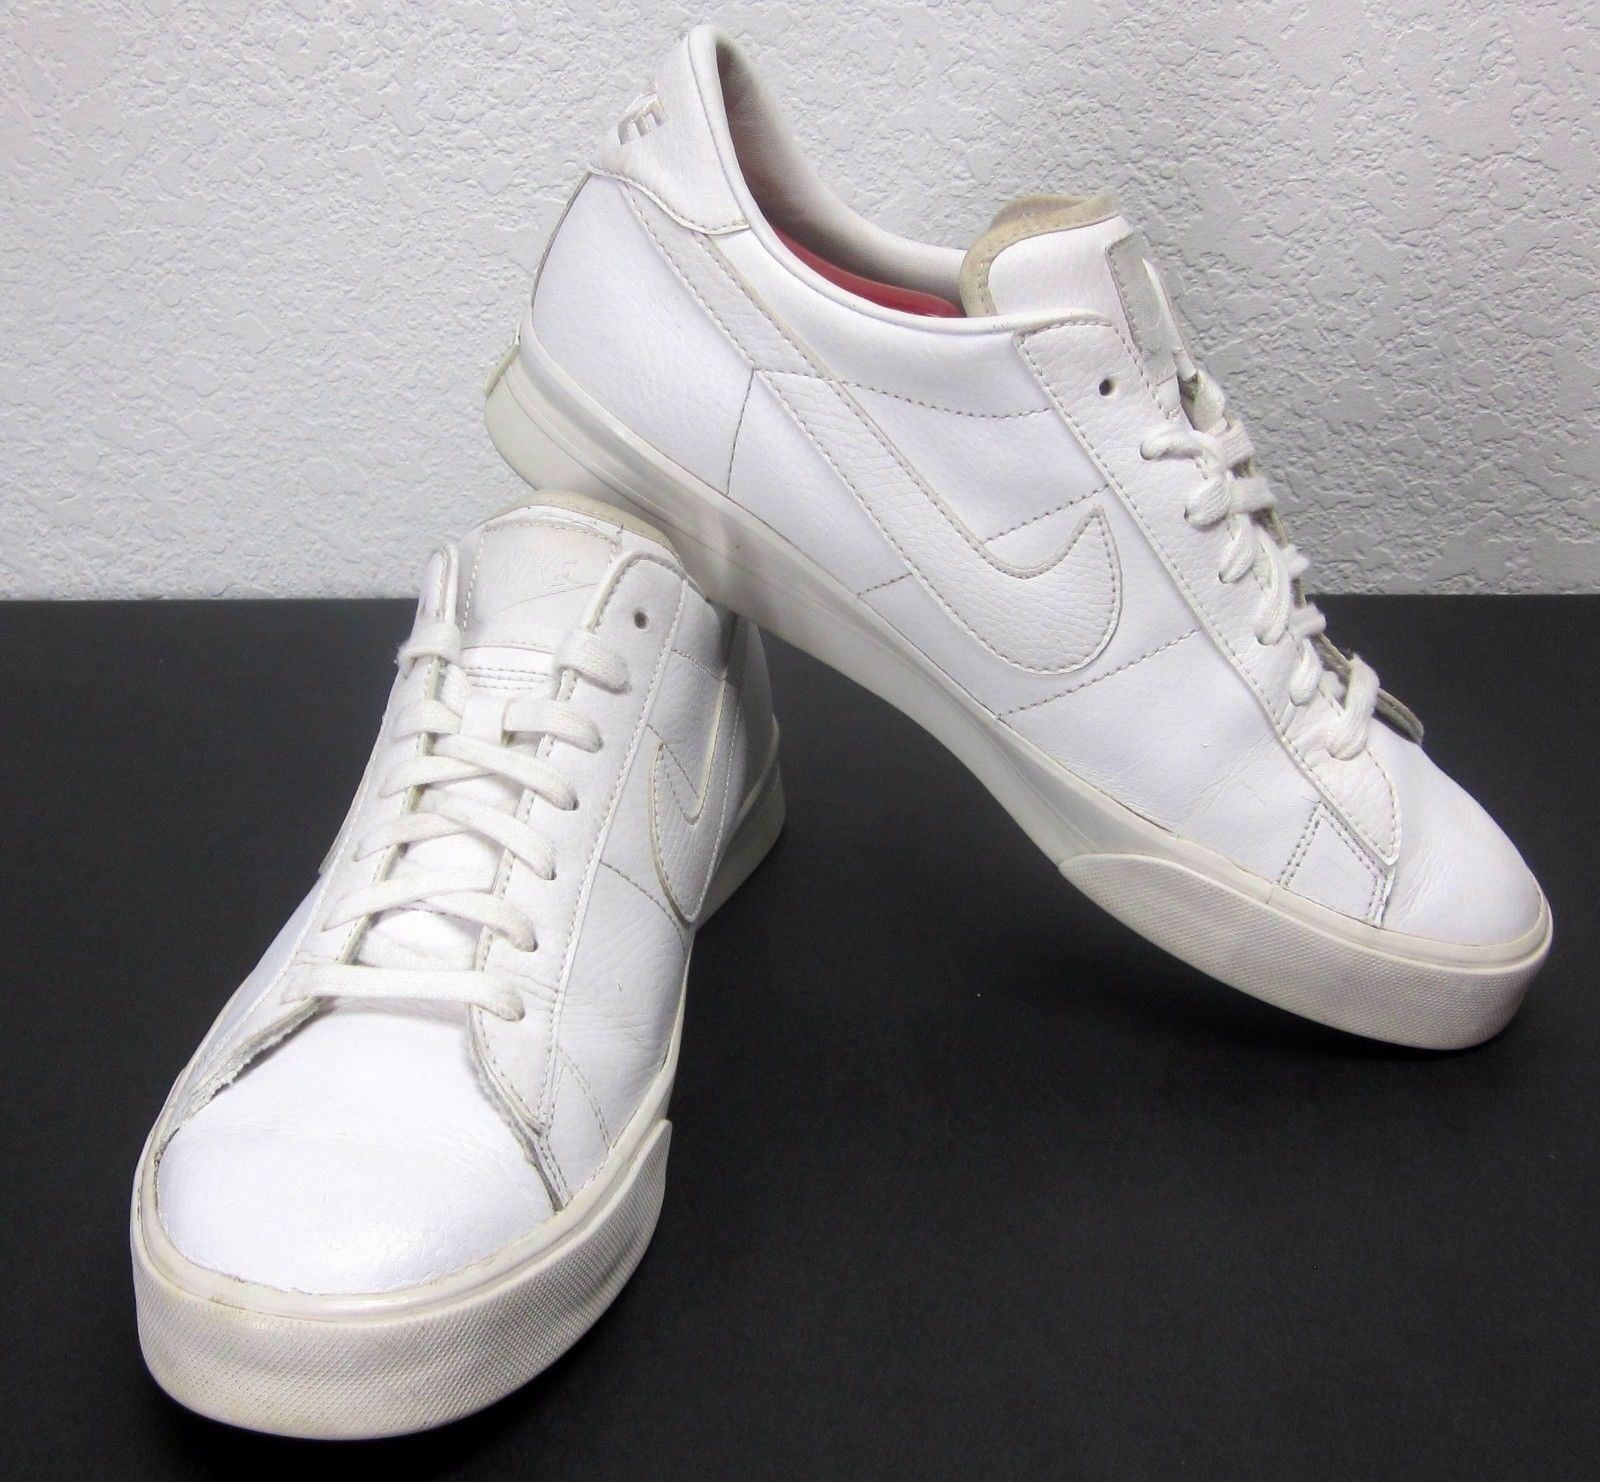 NIKE 2018 (SZ 9.5) WHITE ON WHITE LEATHER BASKETBALL SNEAKERS ATHLETIC SHOES AIR